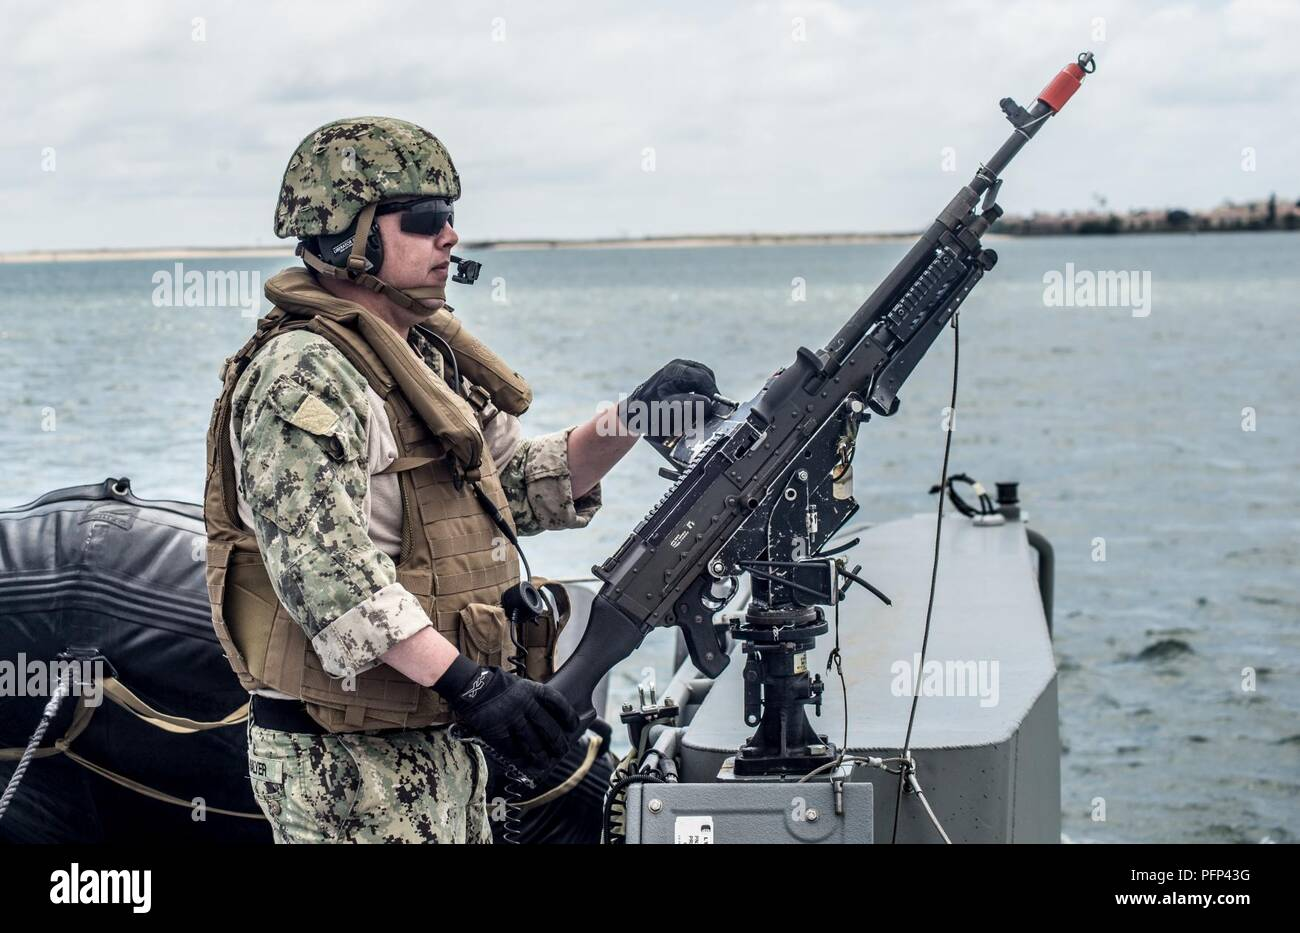 SAN DIEGO (May 23, 2018) Hull Maitenance Technician 2nd Class Tim Salyer assigned to Coastal Riverine Squadron (CRS) 3 mans athe M240 machine gun aboard Mark VI Patrol Boat during high value asset (HVA) escort mission as part of final evaluation problem provided by Coastal Riverine Group (CRG) 1 Training and Evaluation Unit. CRG provides a core capability to defend designated high value assets throughout the green and blue-water environment and providing deployable Adaptive Force Packages (AFP) worldwide in an integrated, joint and combined theater of operations. - Stock Image